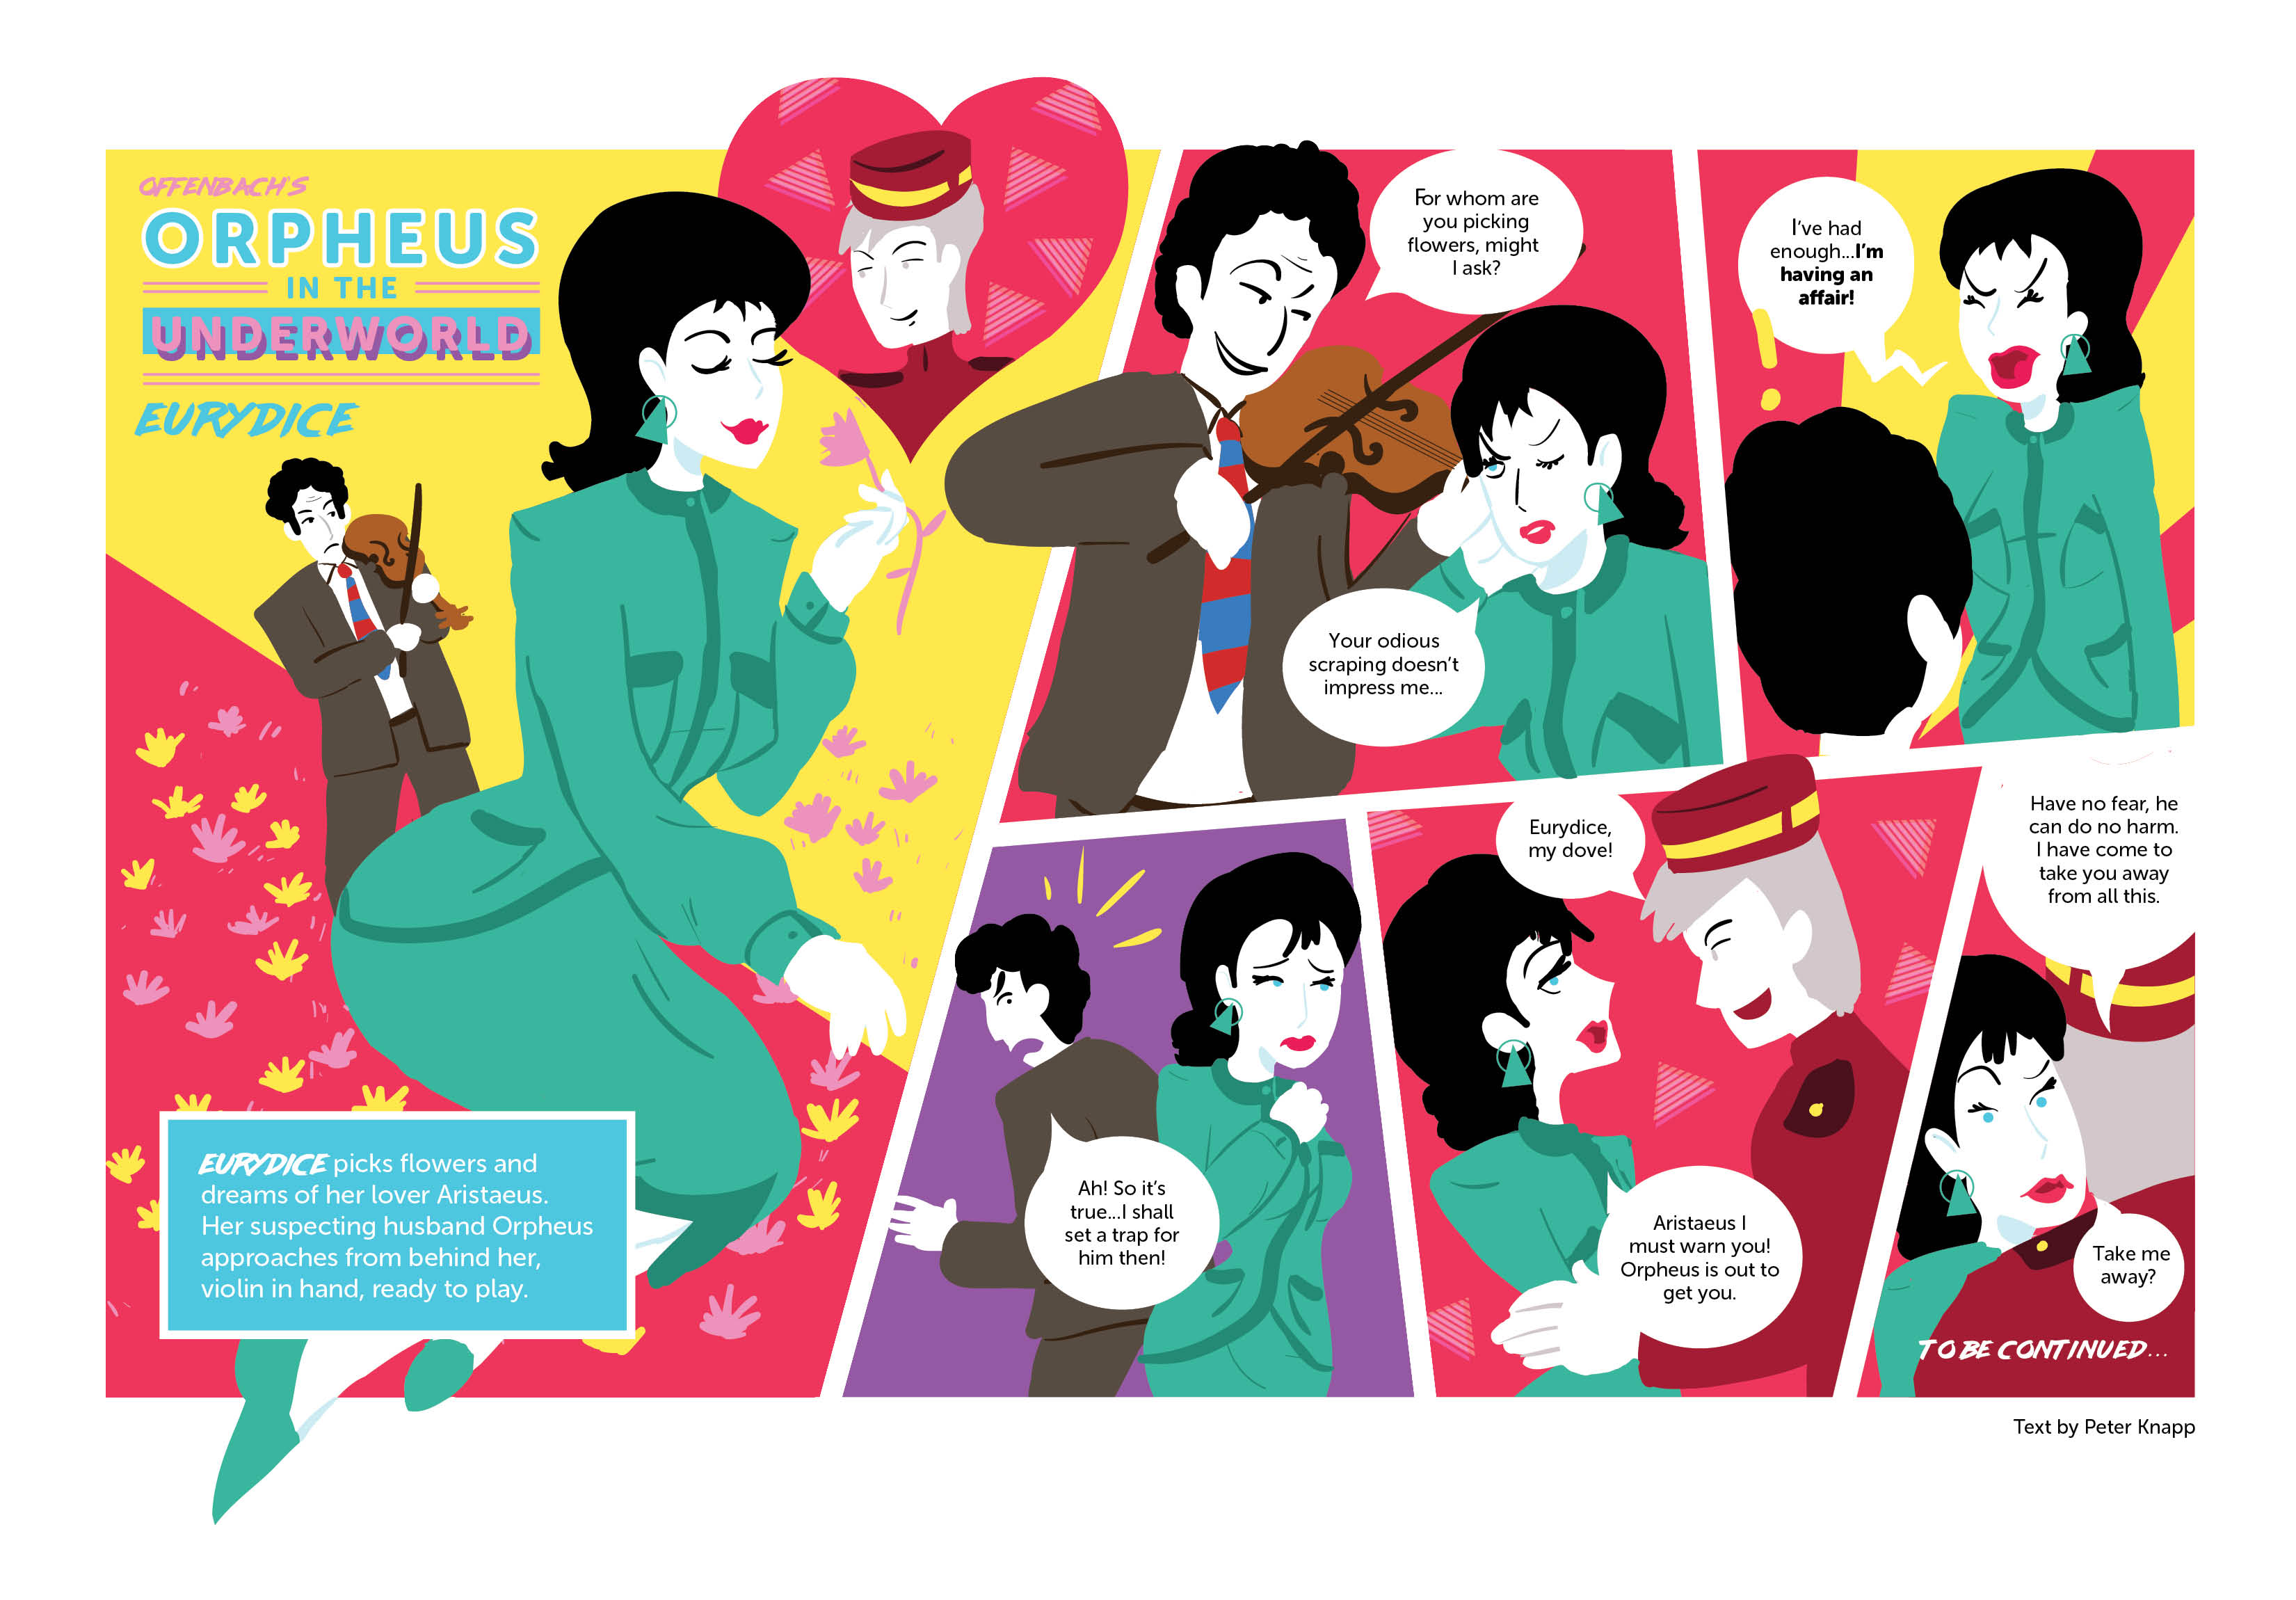 Eurydice Comic 1 (Updated with credit) (1)